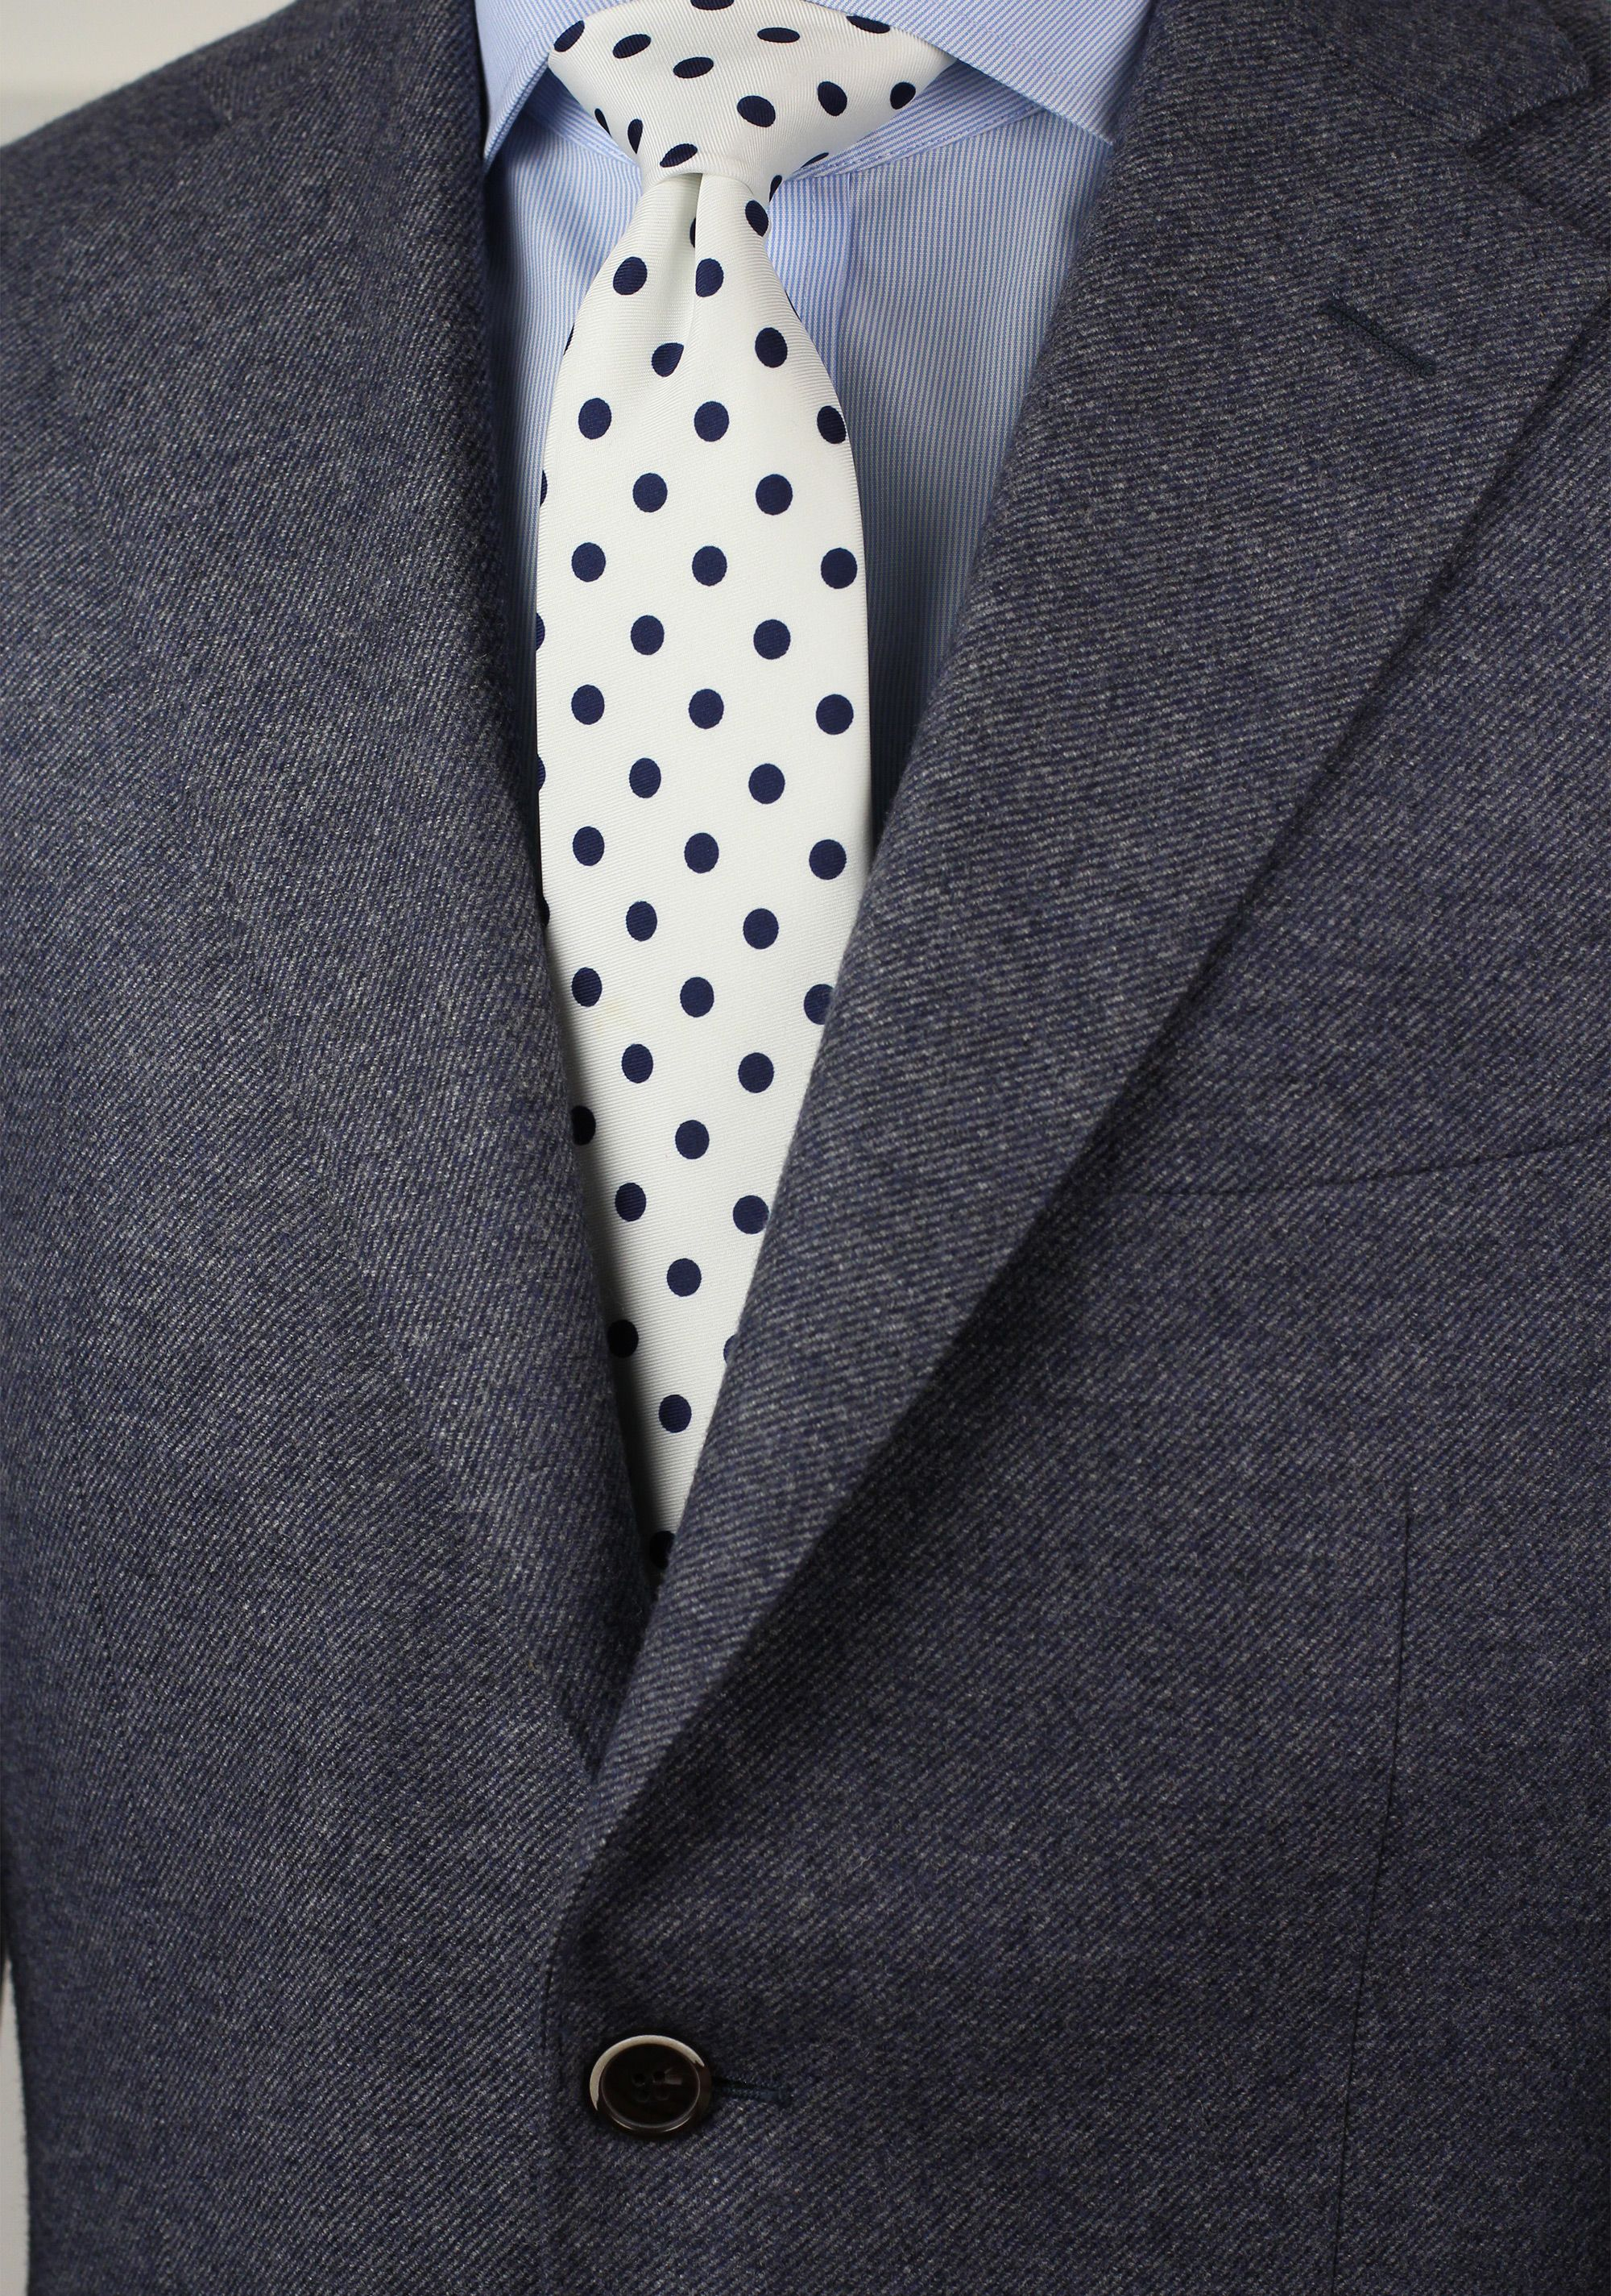 dd5ef0434d66 Trendy White Tie with Navy Blue Polka Dots | Bows-N-Ties.com in 2019 ...